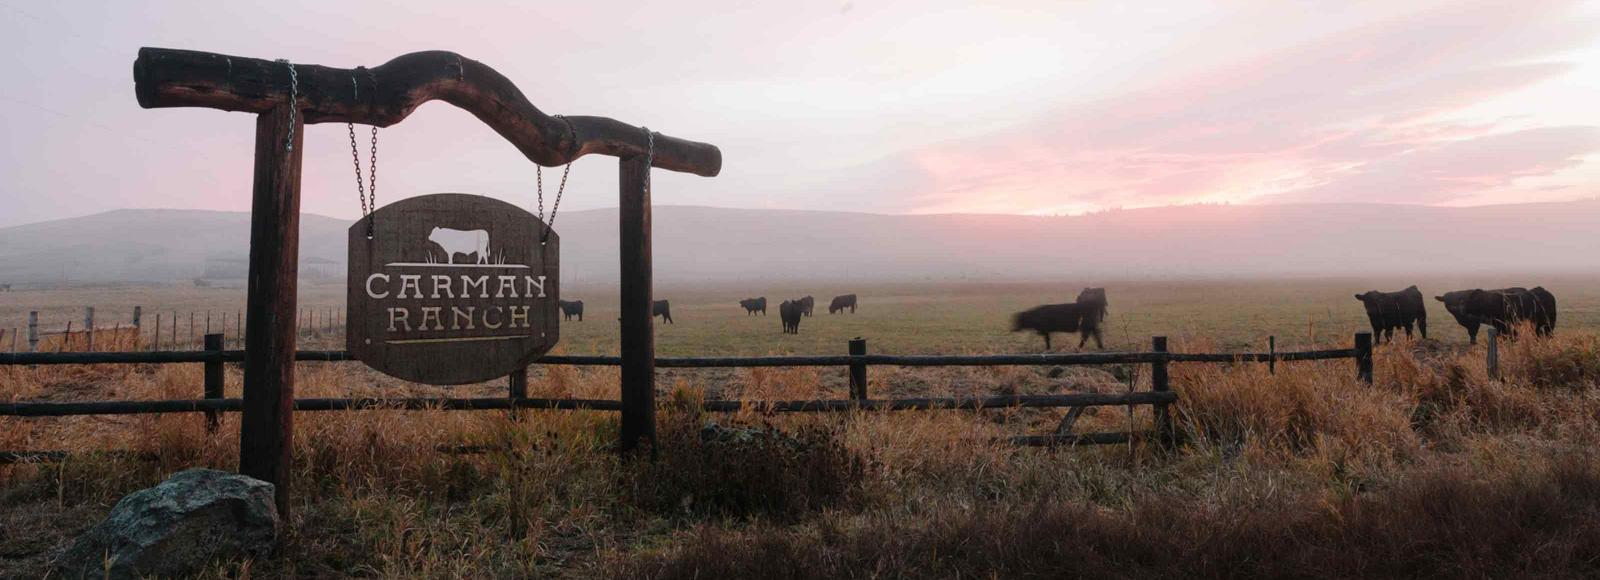 rural ranch at sunset, sign reads